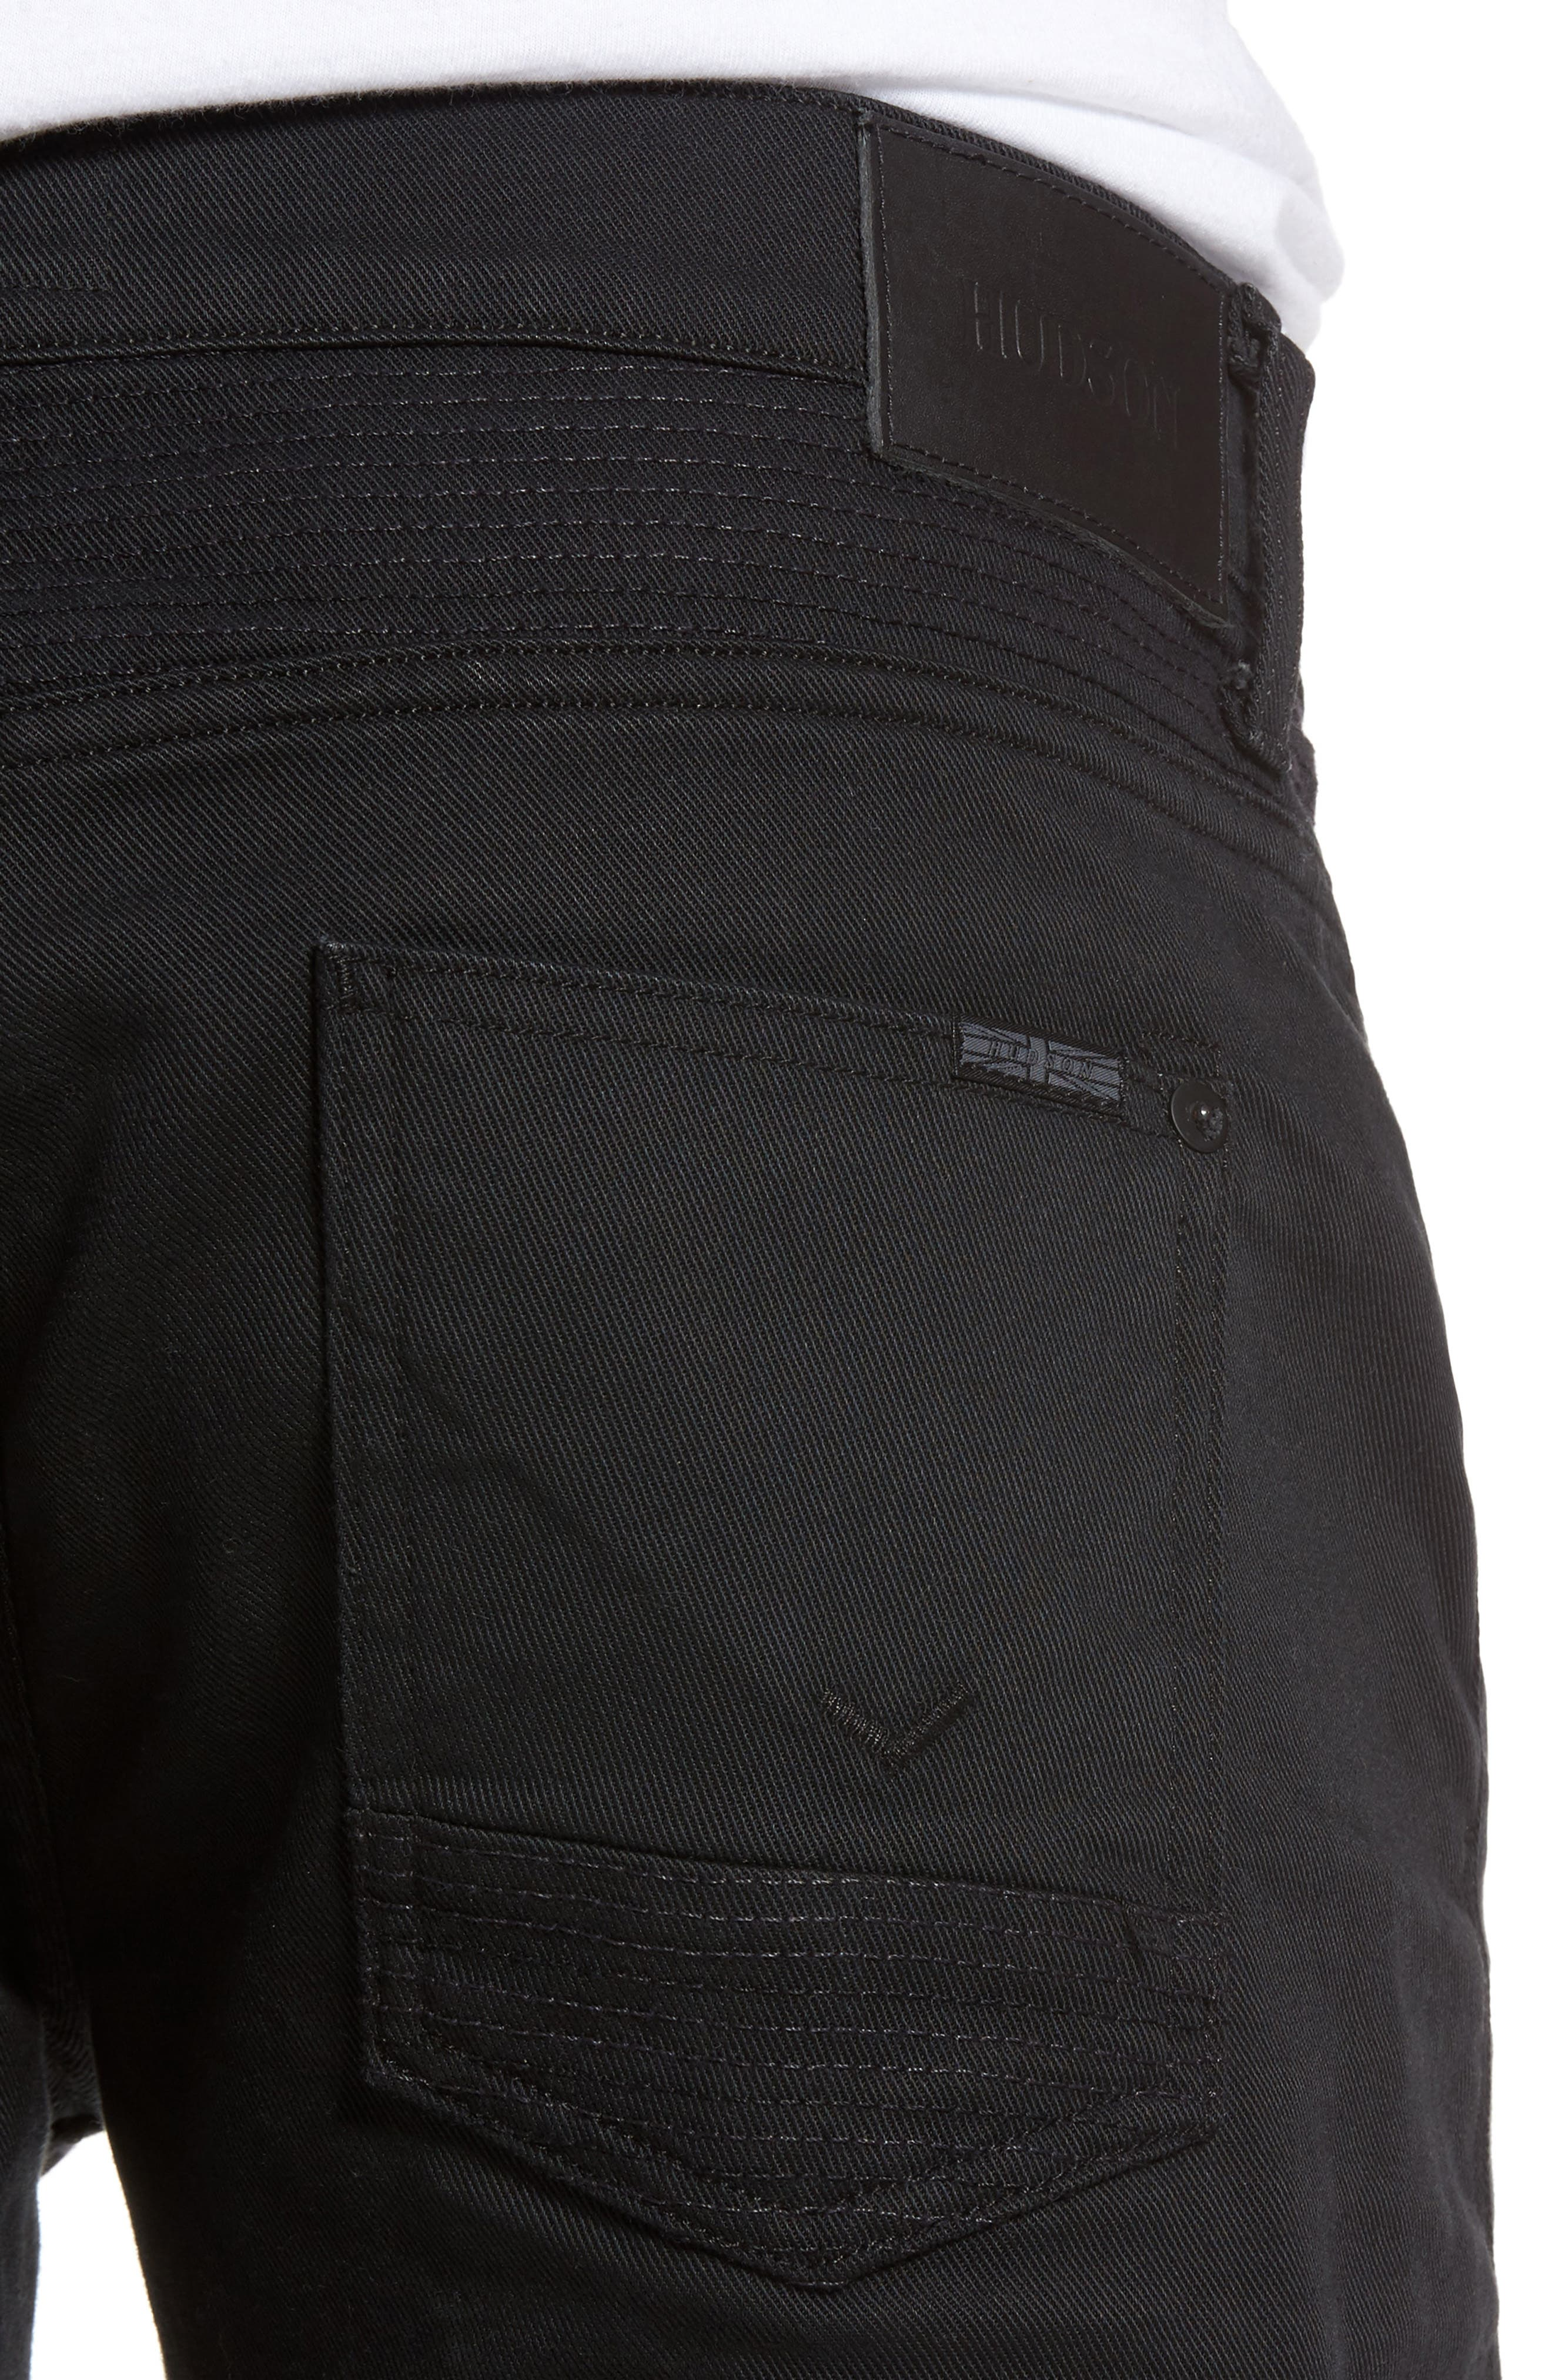 Blinder Biker Skinny Fit Jeans,                             Alternate thumbnail 4, color,                             BLACKLIGHT